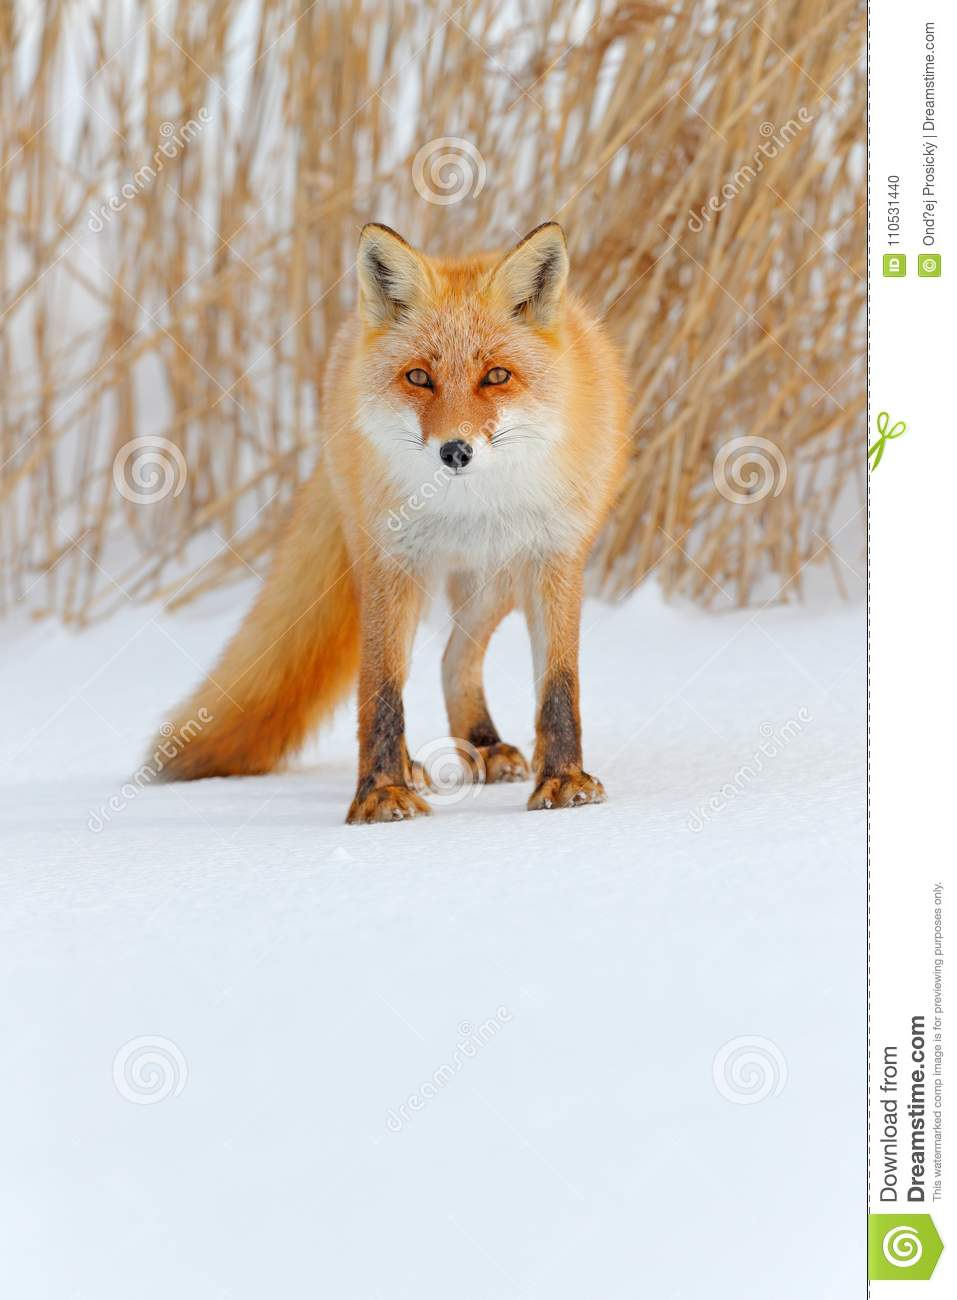 Red fox in white snow. Cold winter with orange fur fox. Hunting animal in the snowy meadow, Japan. Beautiful orange coat animal na